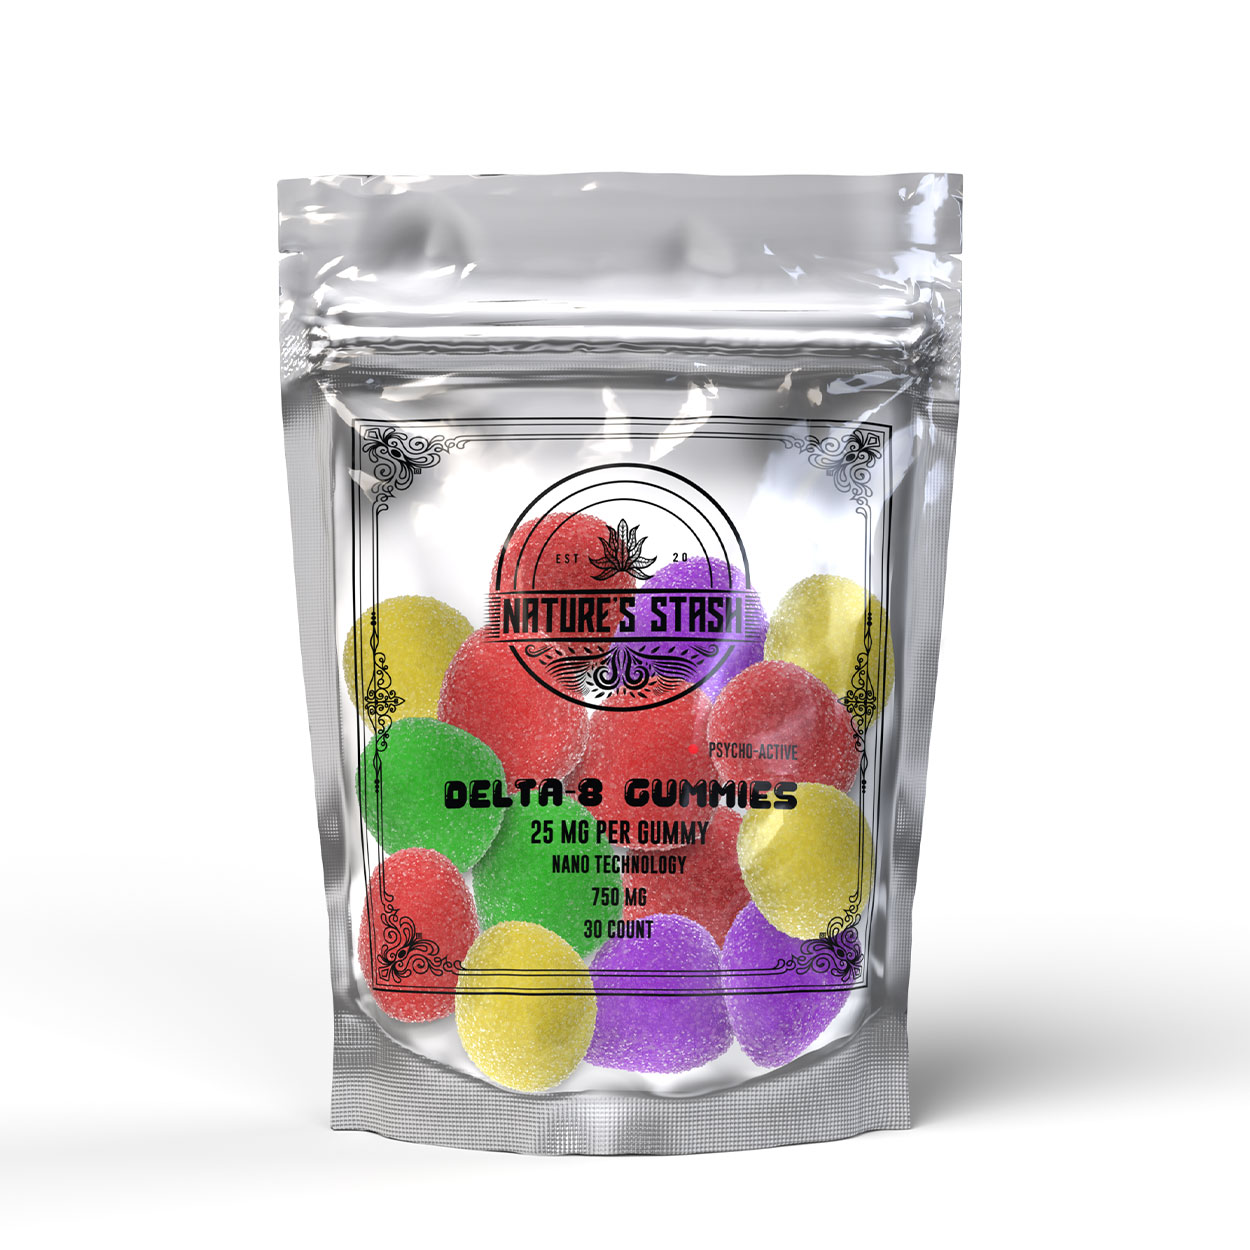 Nature's Stash Delta-8 CBD Gummies for Stress and Anxiety Relief